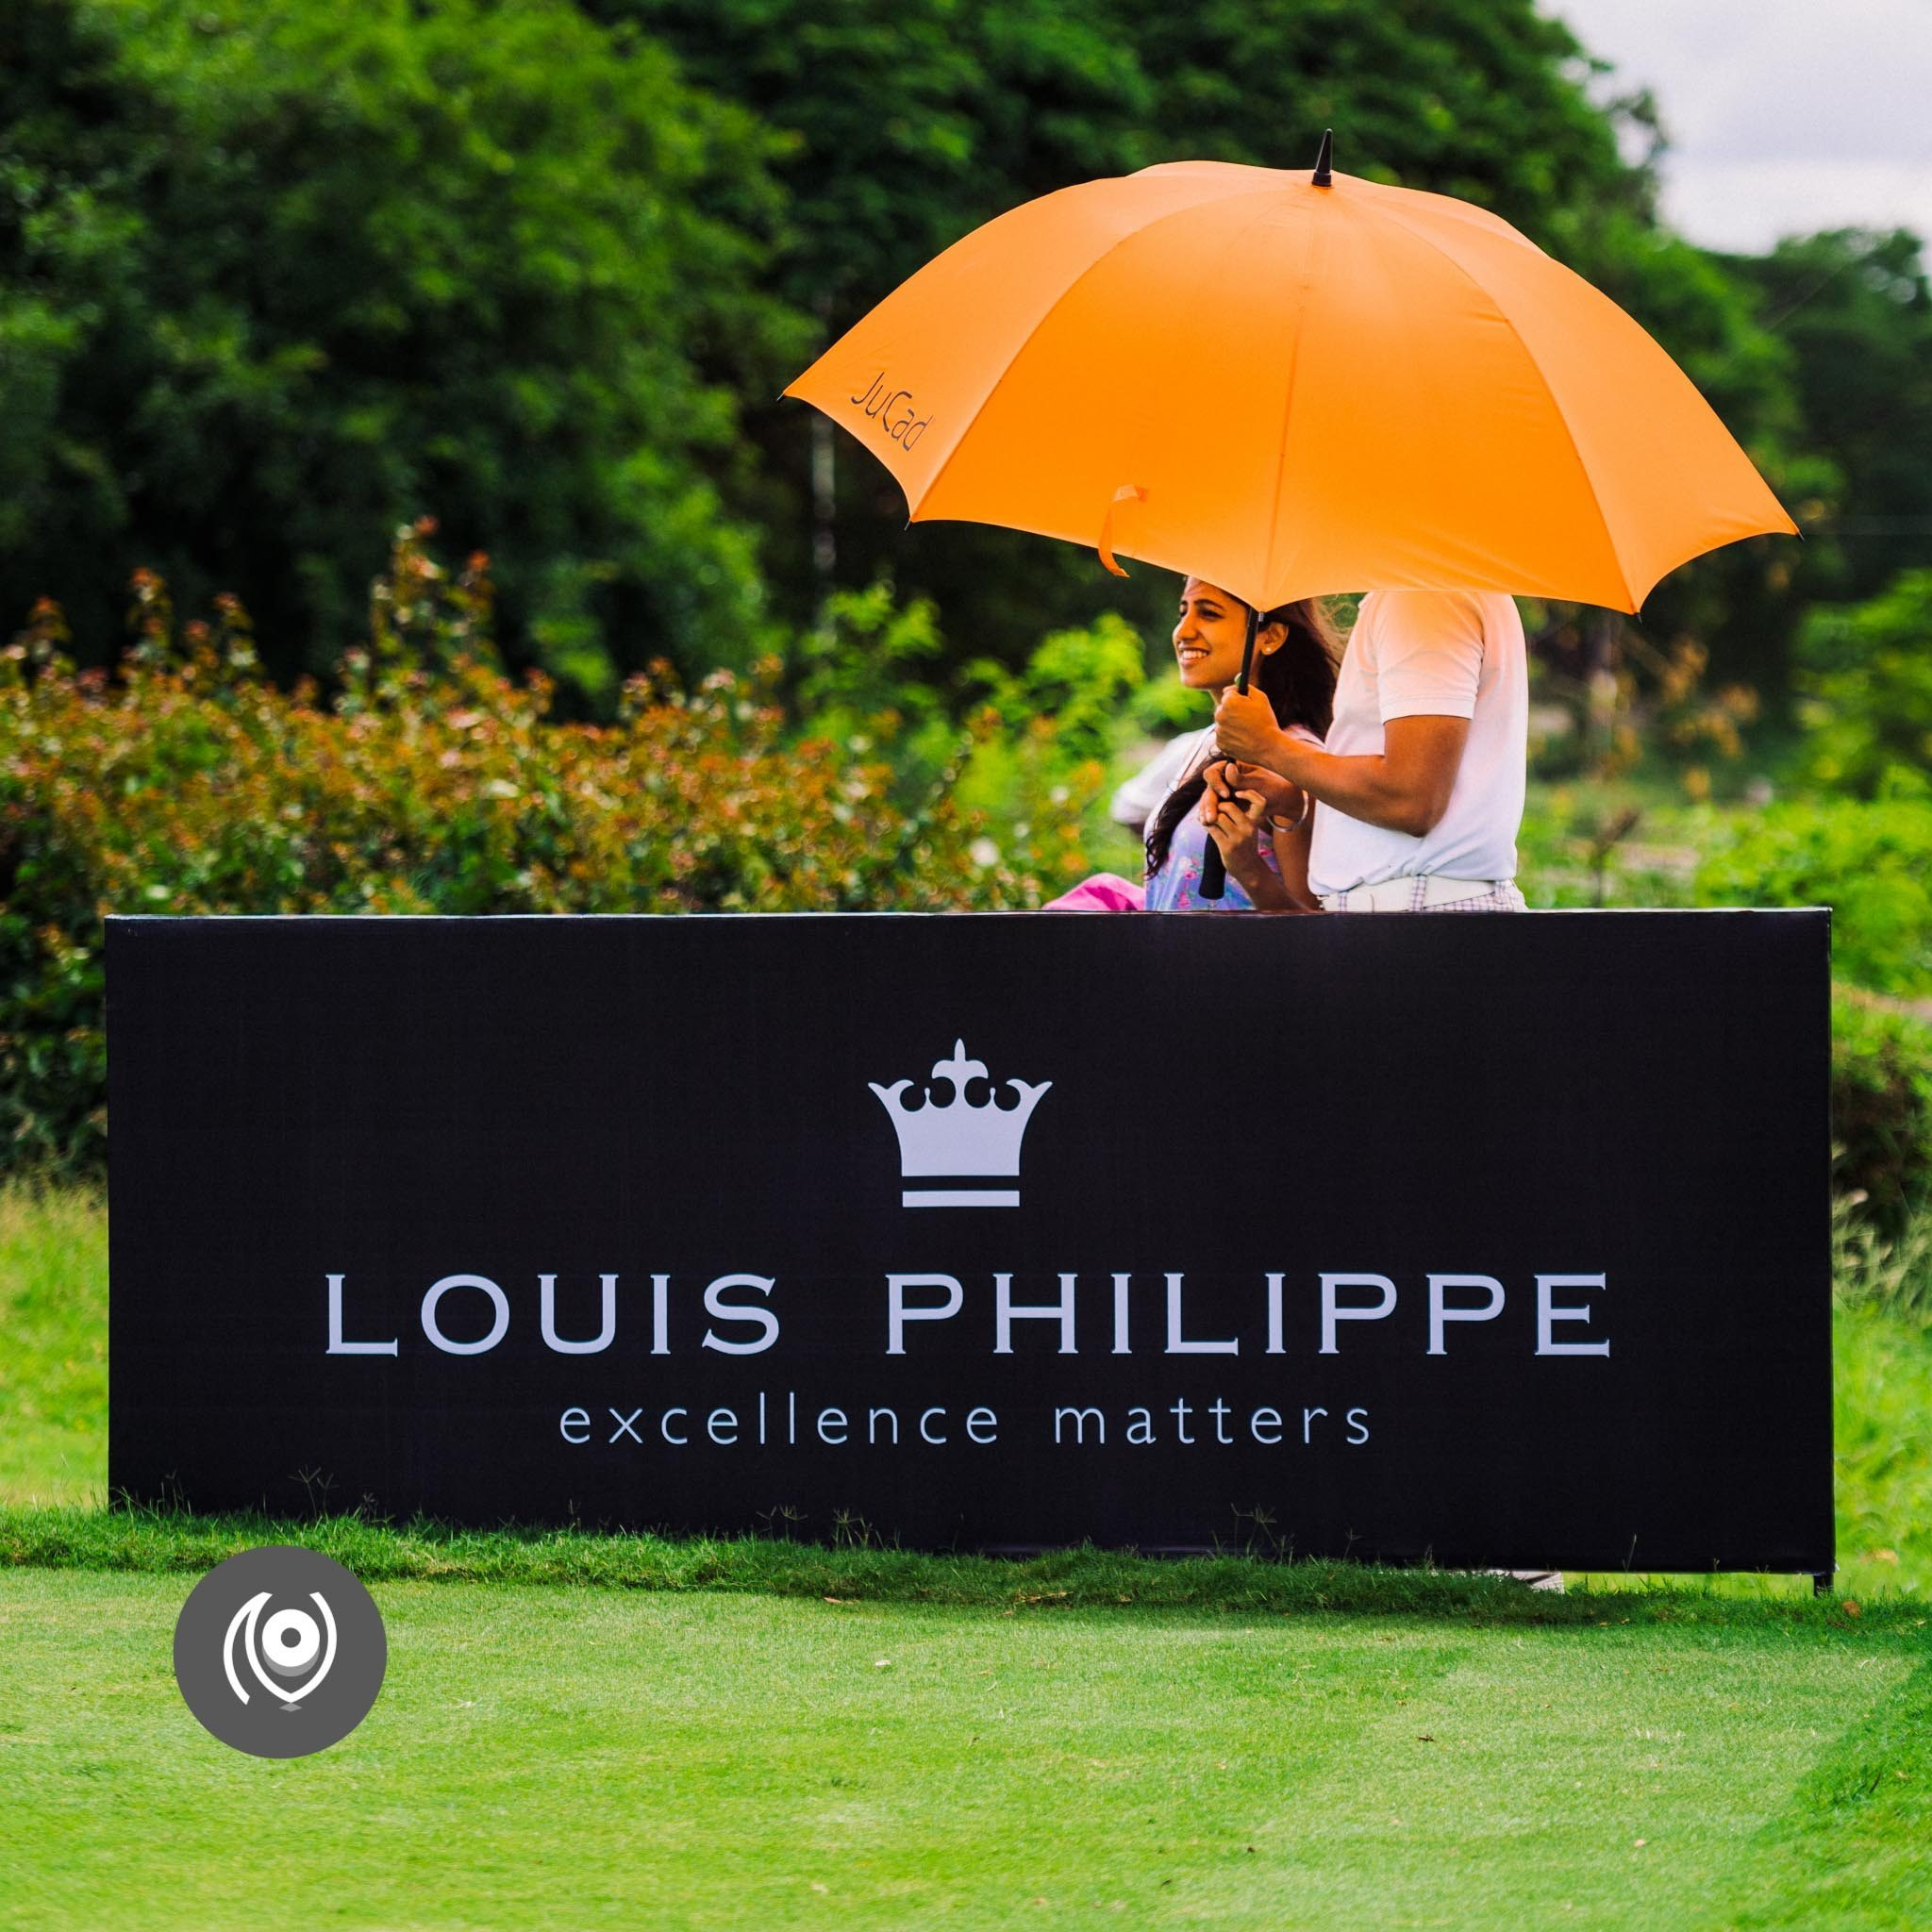 #EyesForStreetStyle #Bangalore LouisPhilippeIndia #LPCup #ProGolf Naina.co Luxury & Lifestyle, Photographer Storyteller, Blogger.